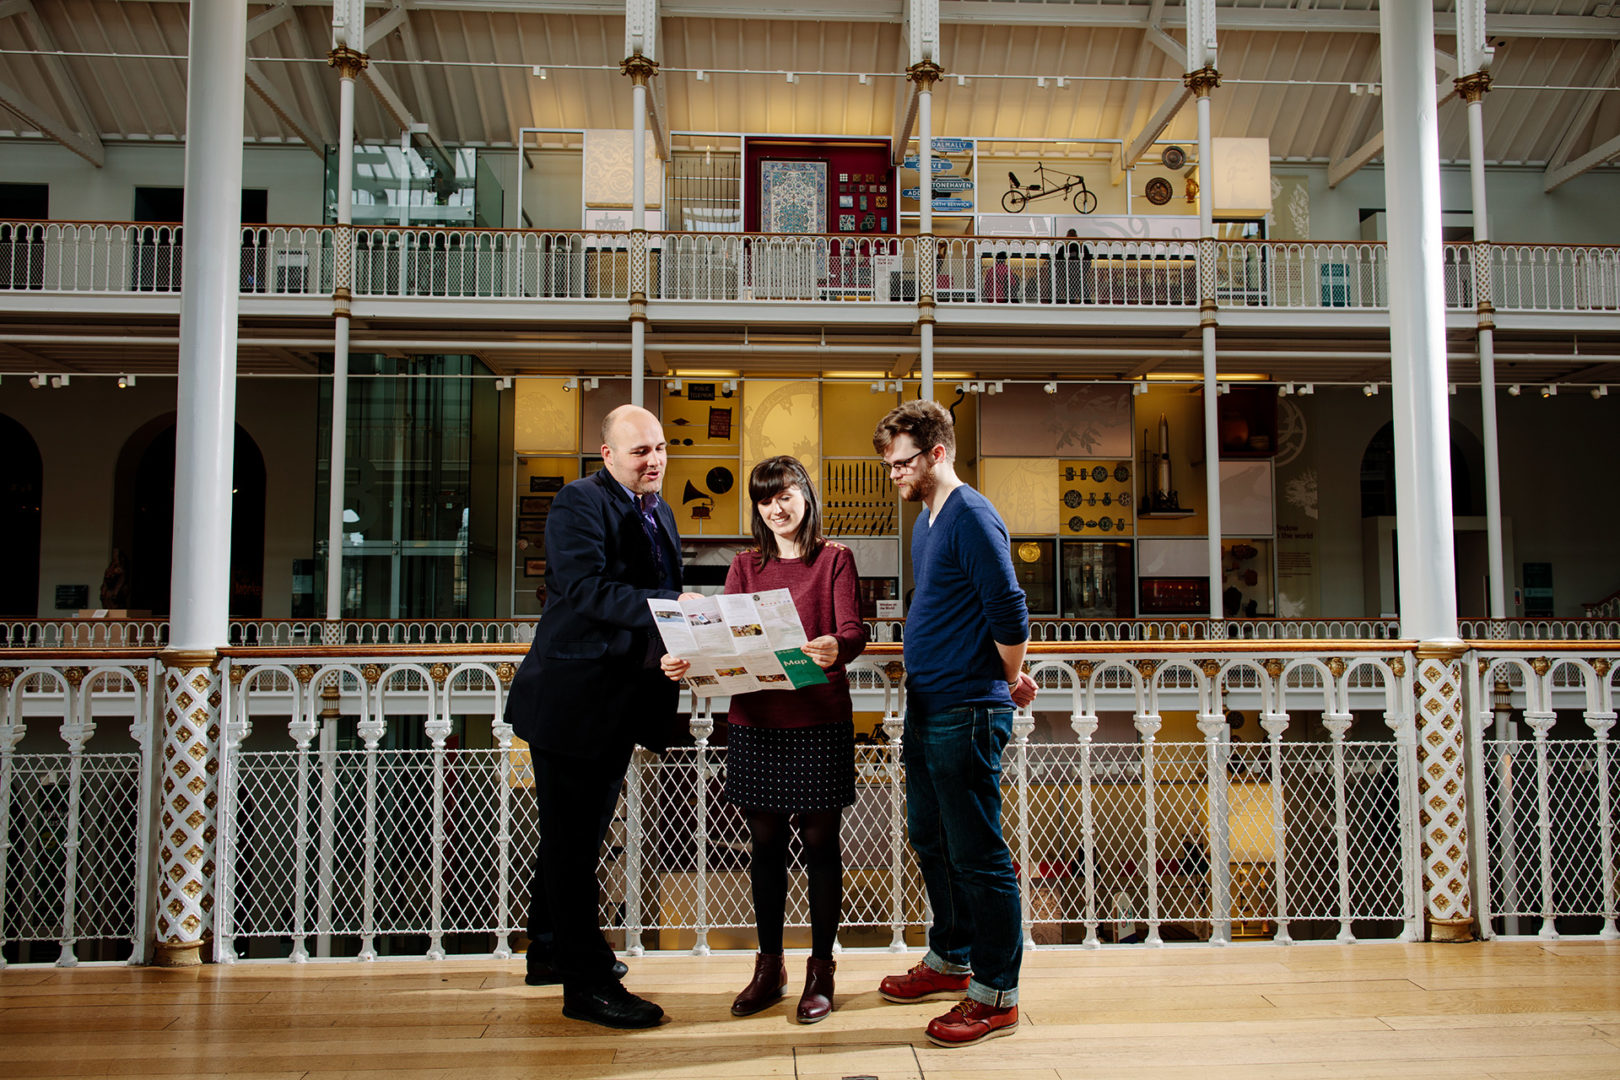 Publicity shot in the Grand Gallery at the National Museum of Scotland